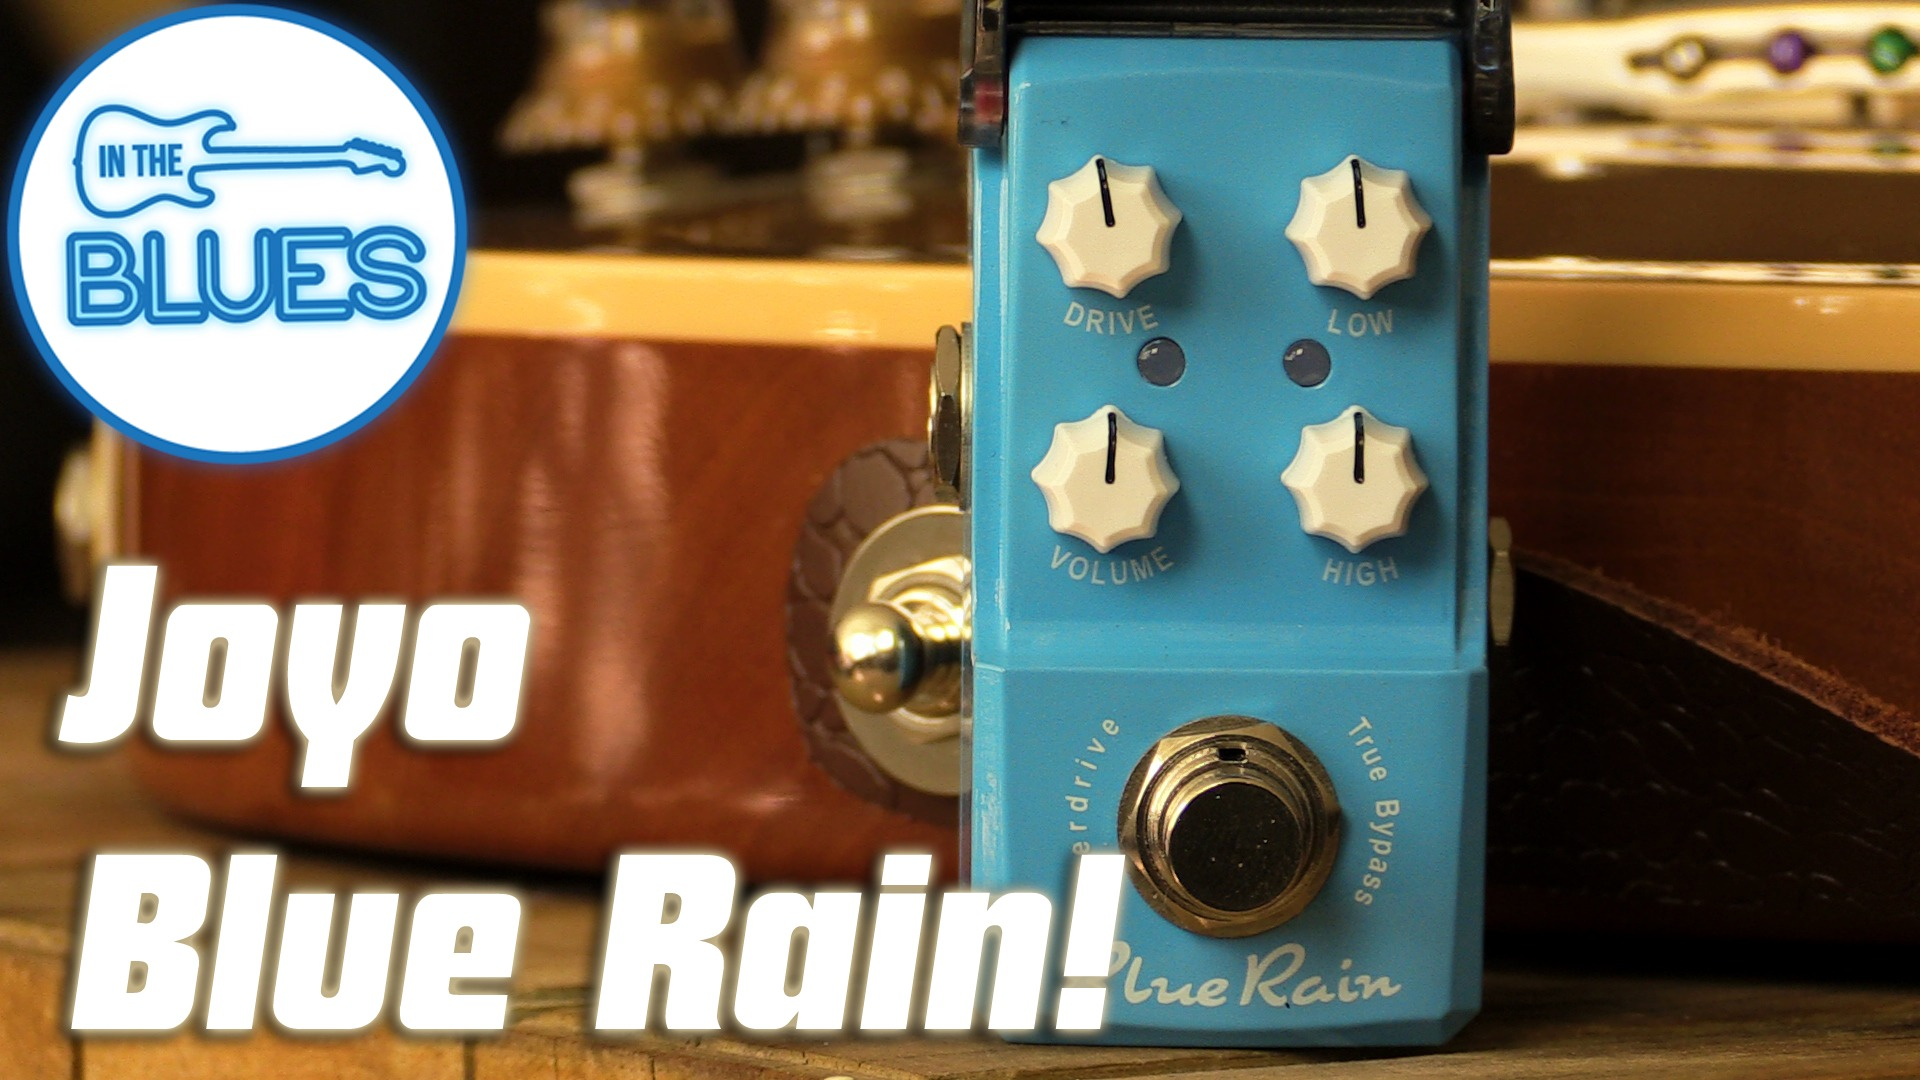 Joyo Blue Rain Overdrive Guitar Gear Help Guides Amp Reviews